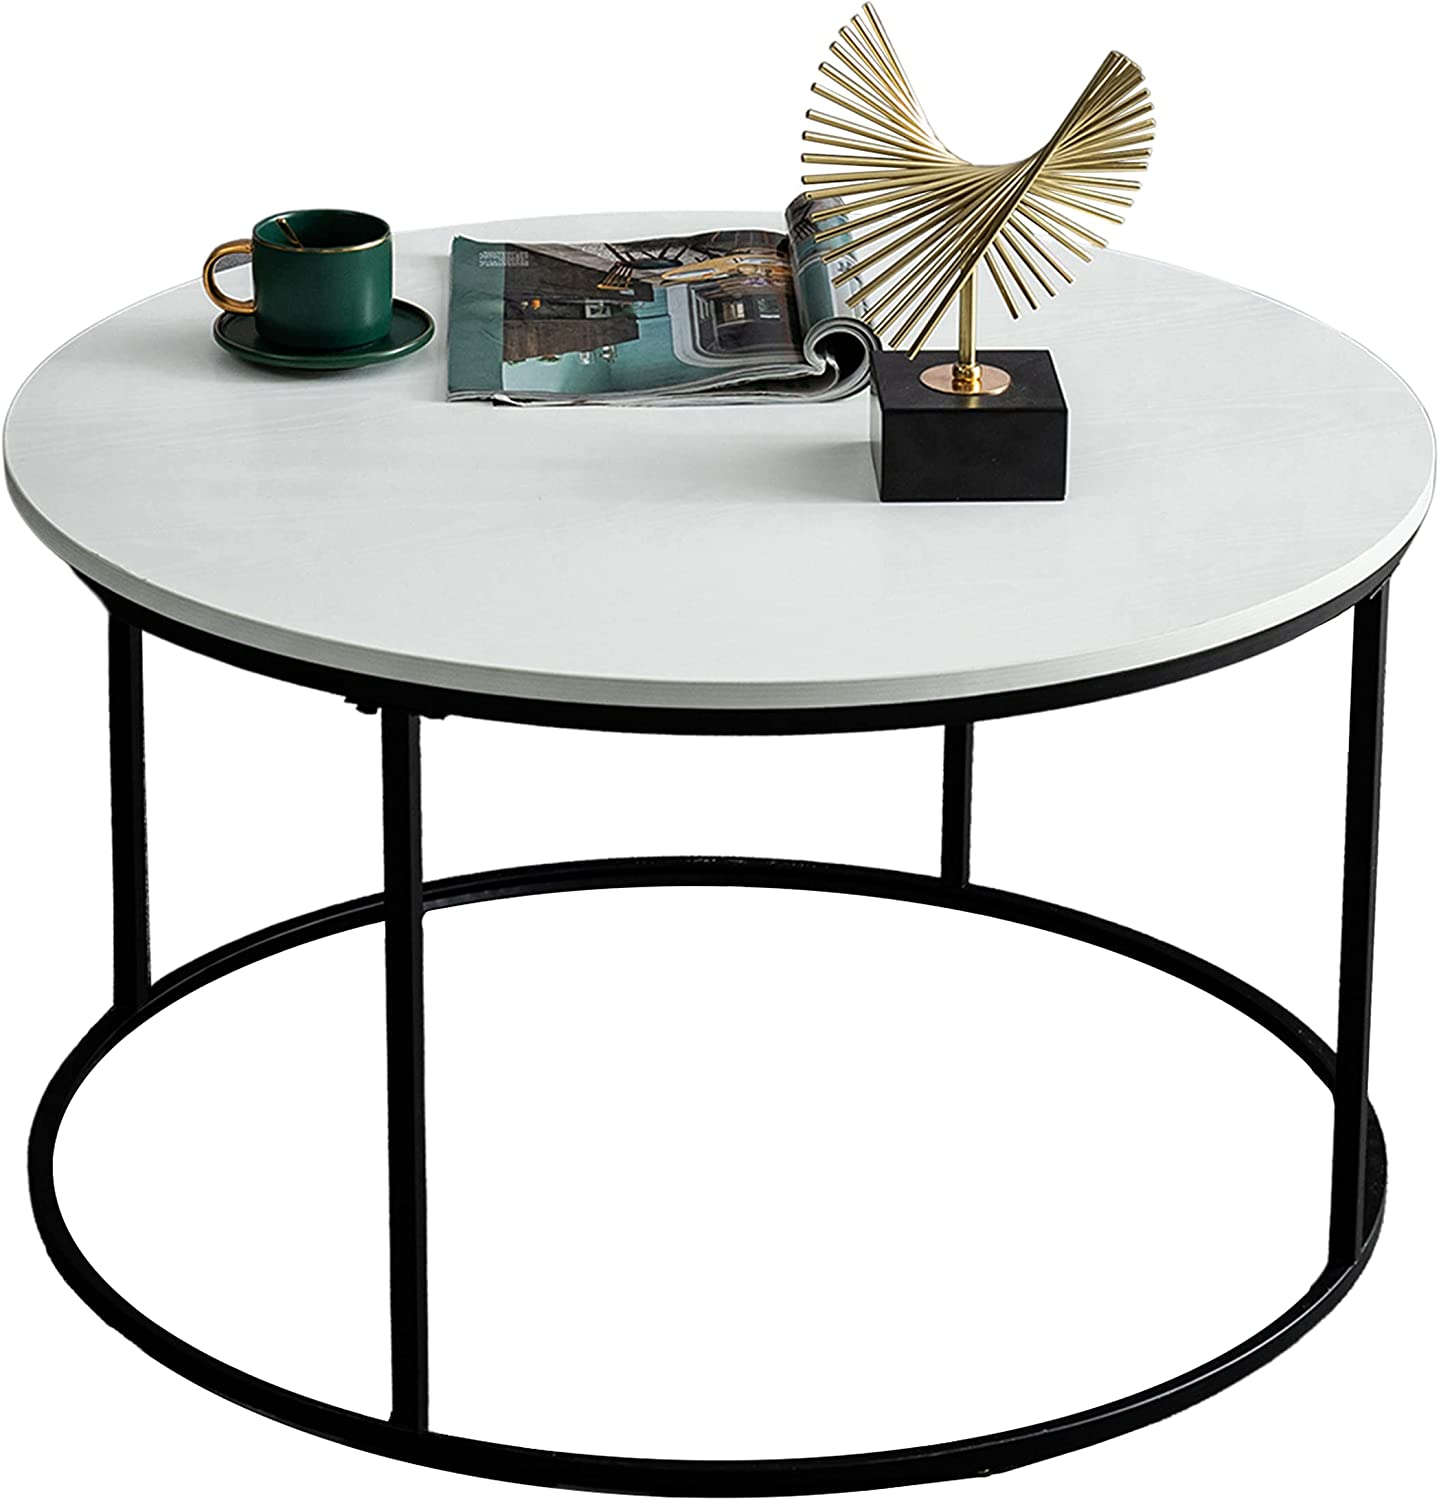 unisex Max 47% OFF Round Coffee Table for Living Room Tables Modern Circle